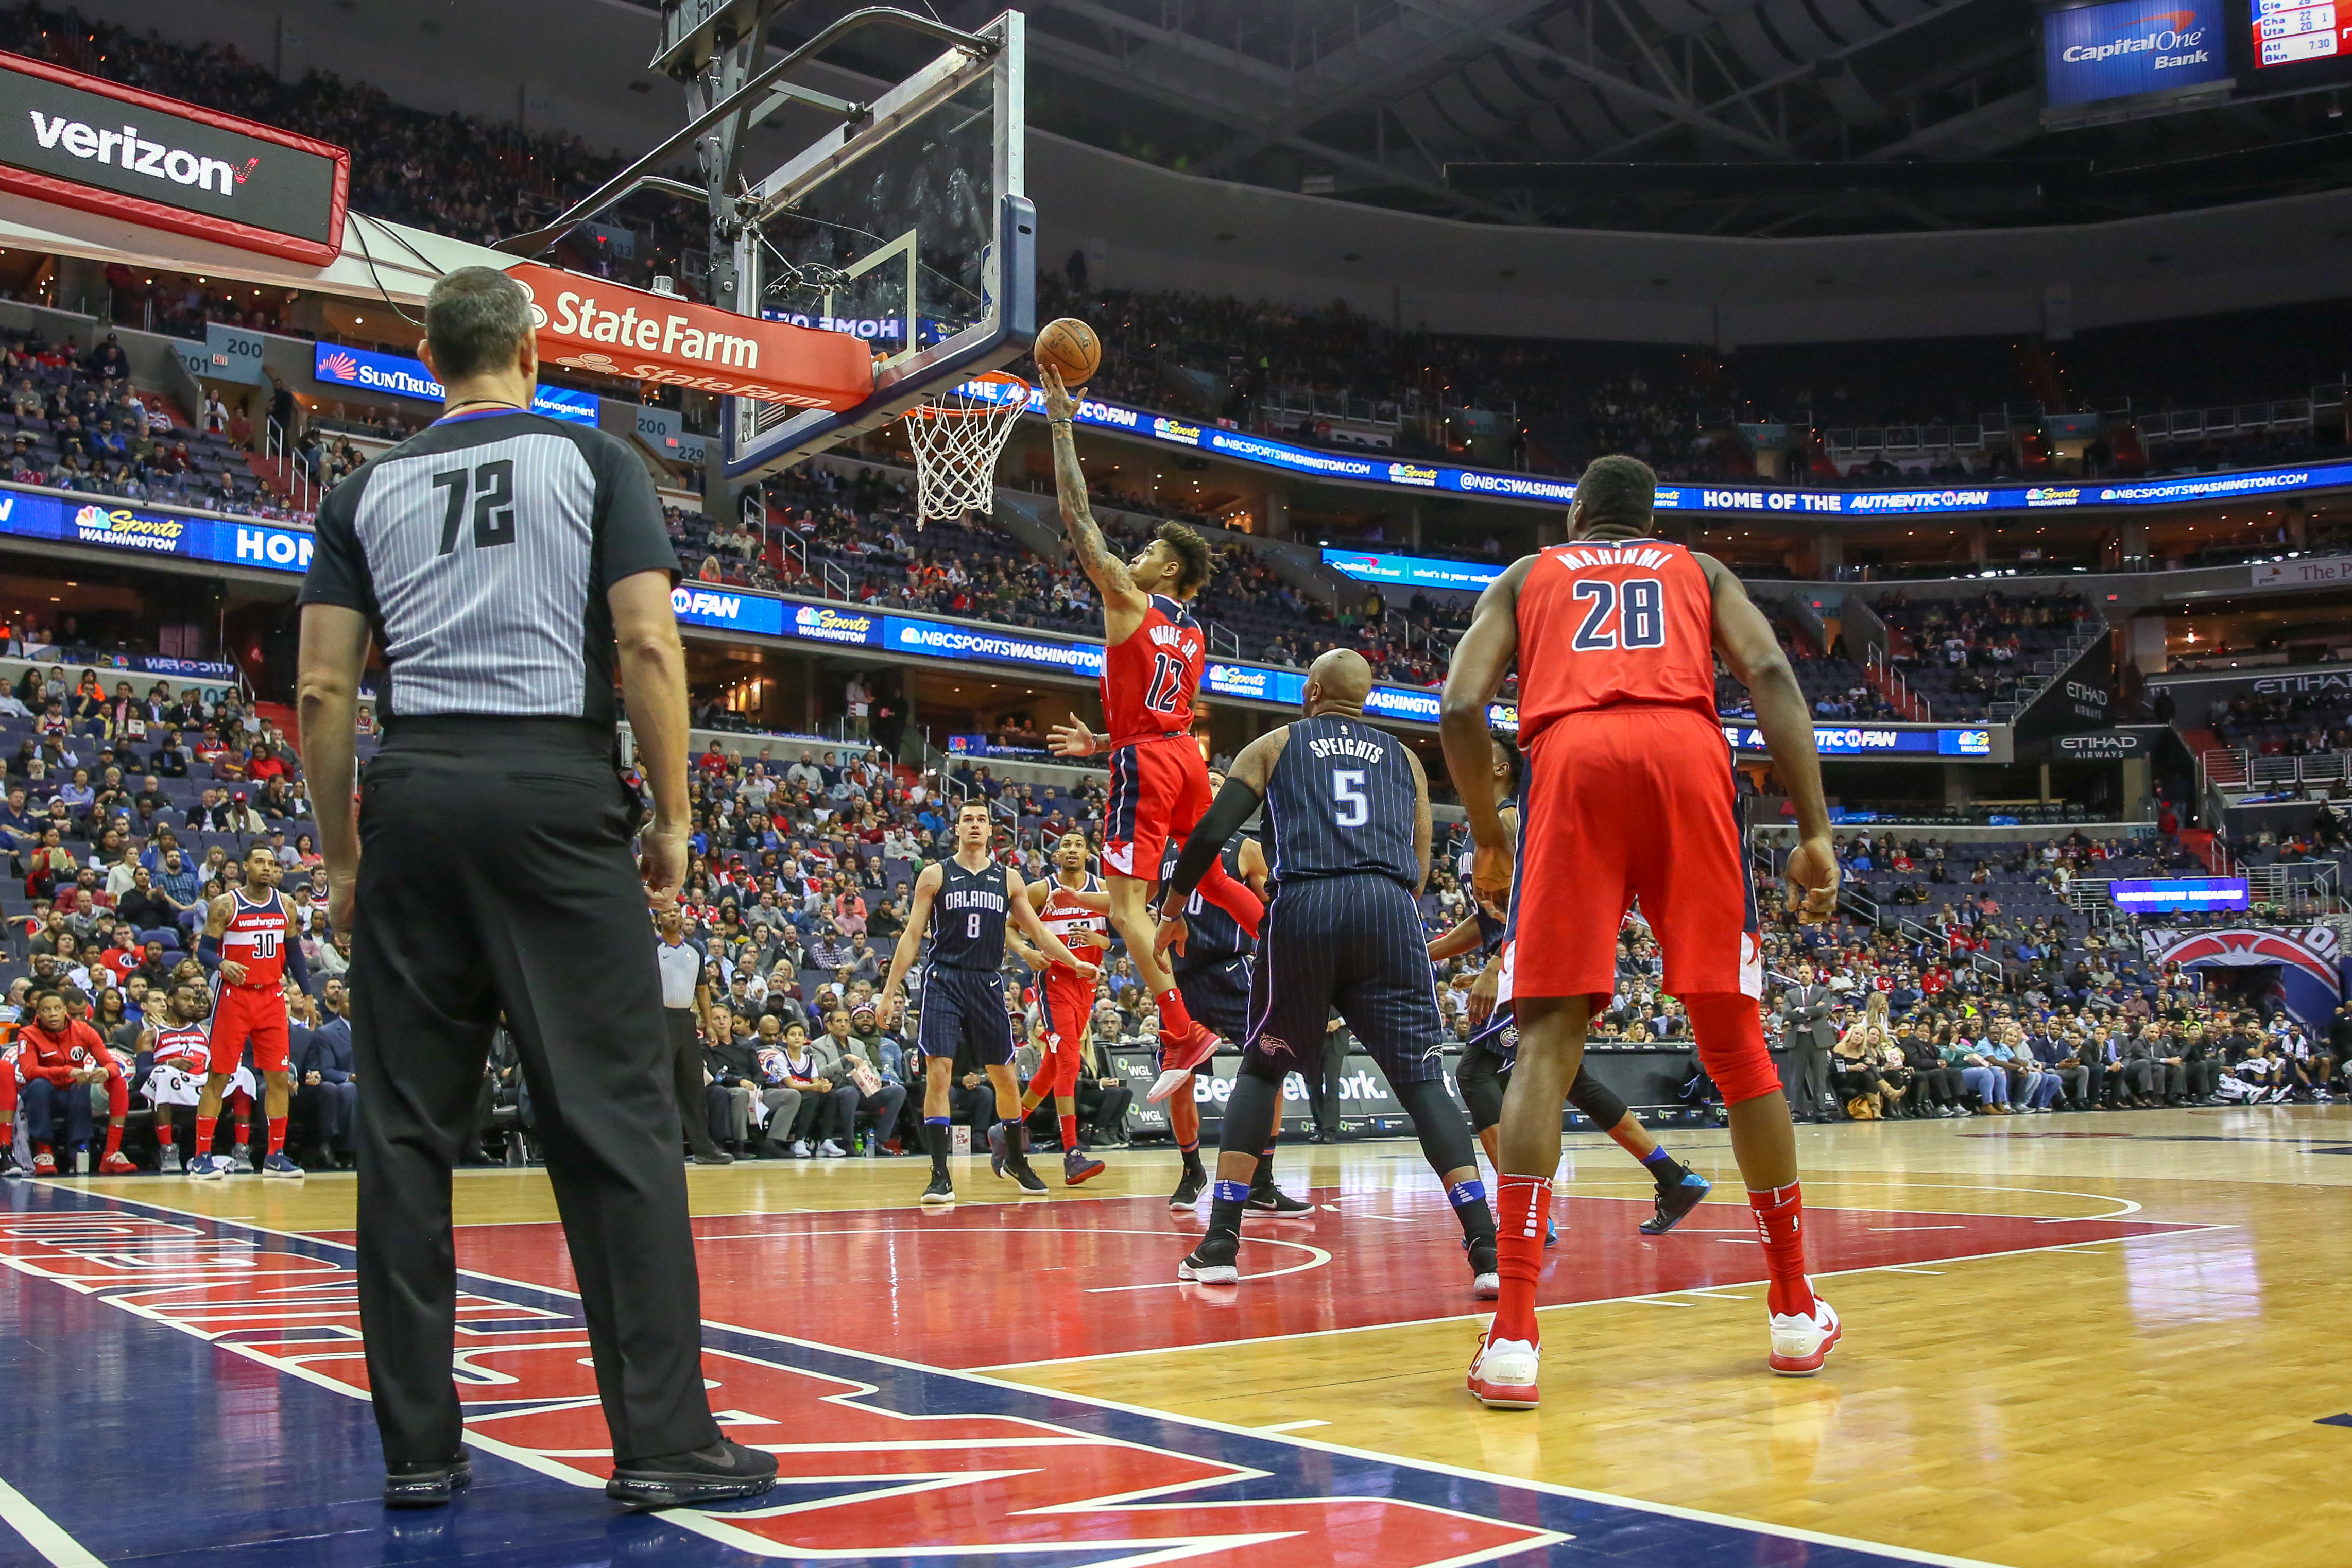 Despite going into the third quarter tied, the Wizards pulled ahead in the final minutes of their game against the Orlando Magic 125-119. The game was marked by aggressive plays by both teams, but ultimately the Wizards kept their energy up while keeping an eye on the clock. (Amanda Andrade-Rhoades/DC Refined)